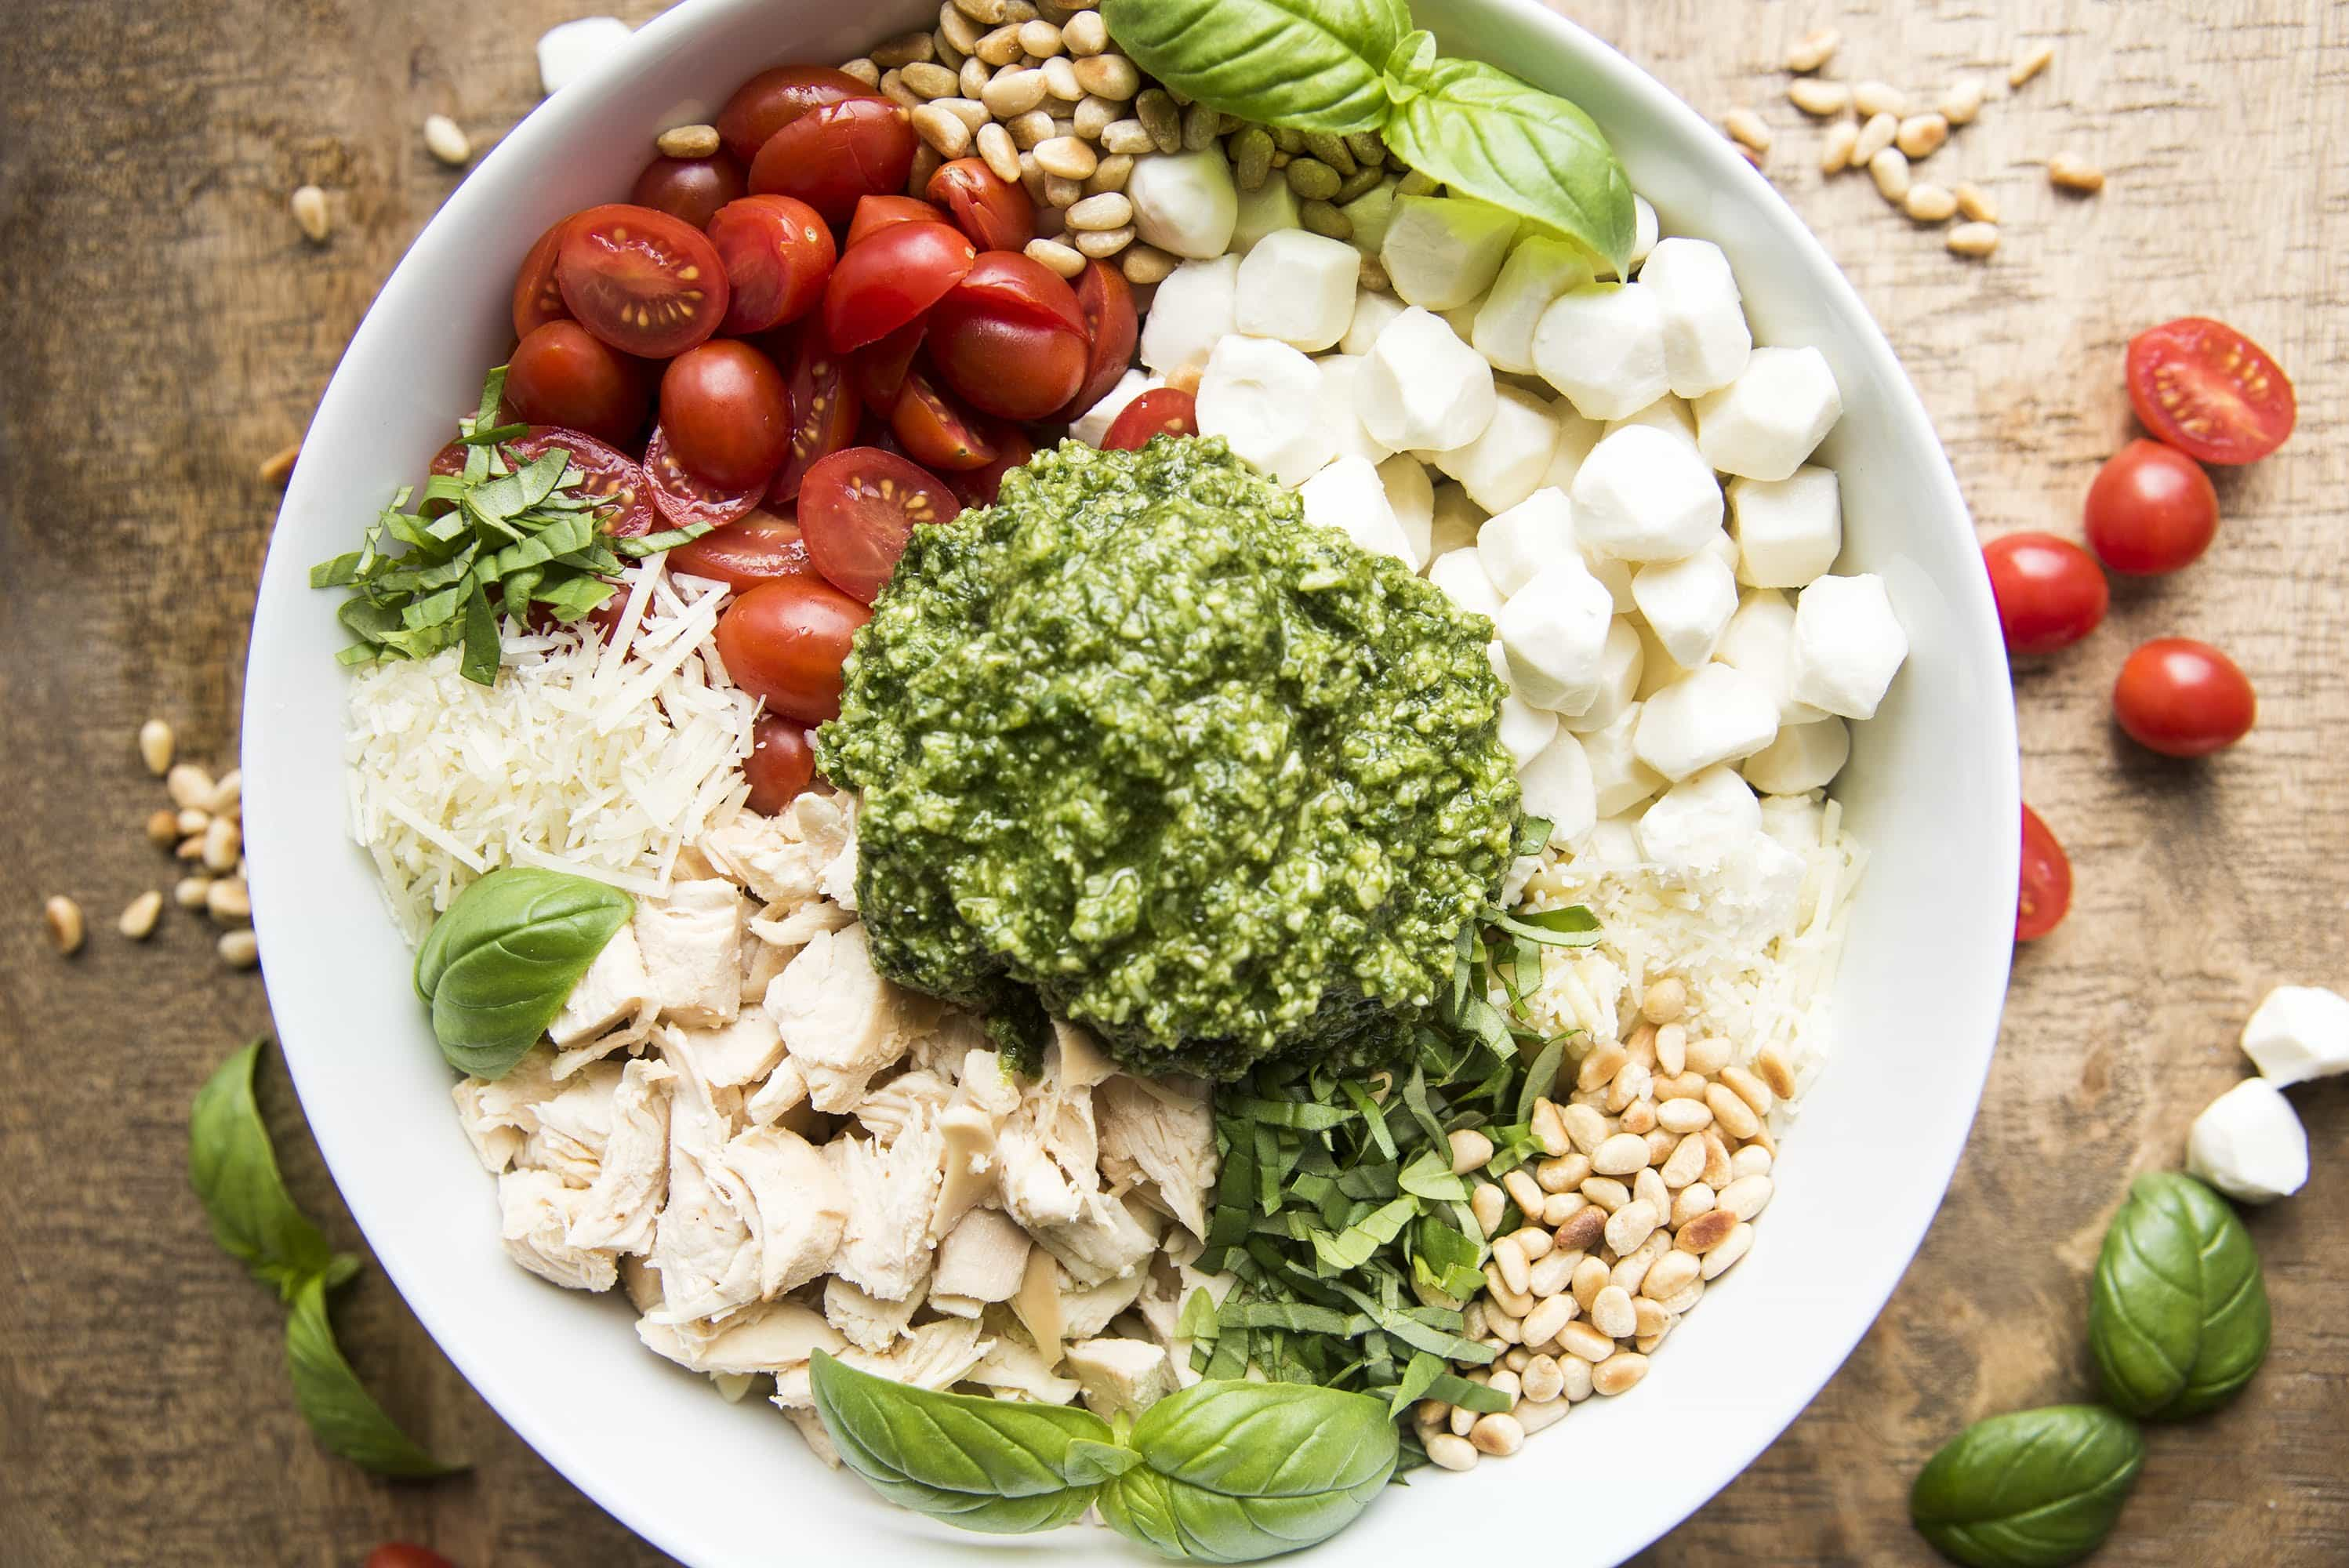 This pesto pasta salad can be easy to make with store bought pesto, rotisserie chicken, and mozzarella pearls!